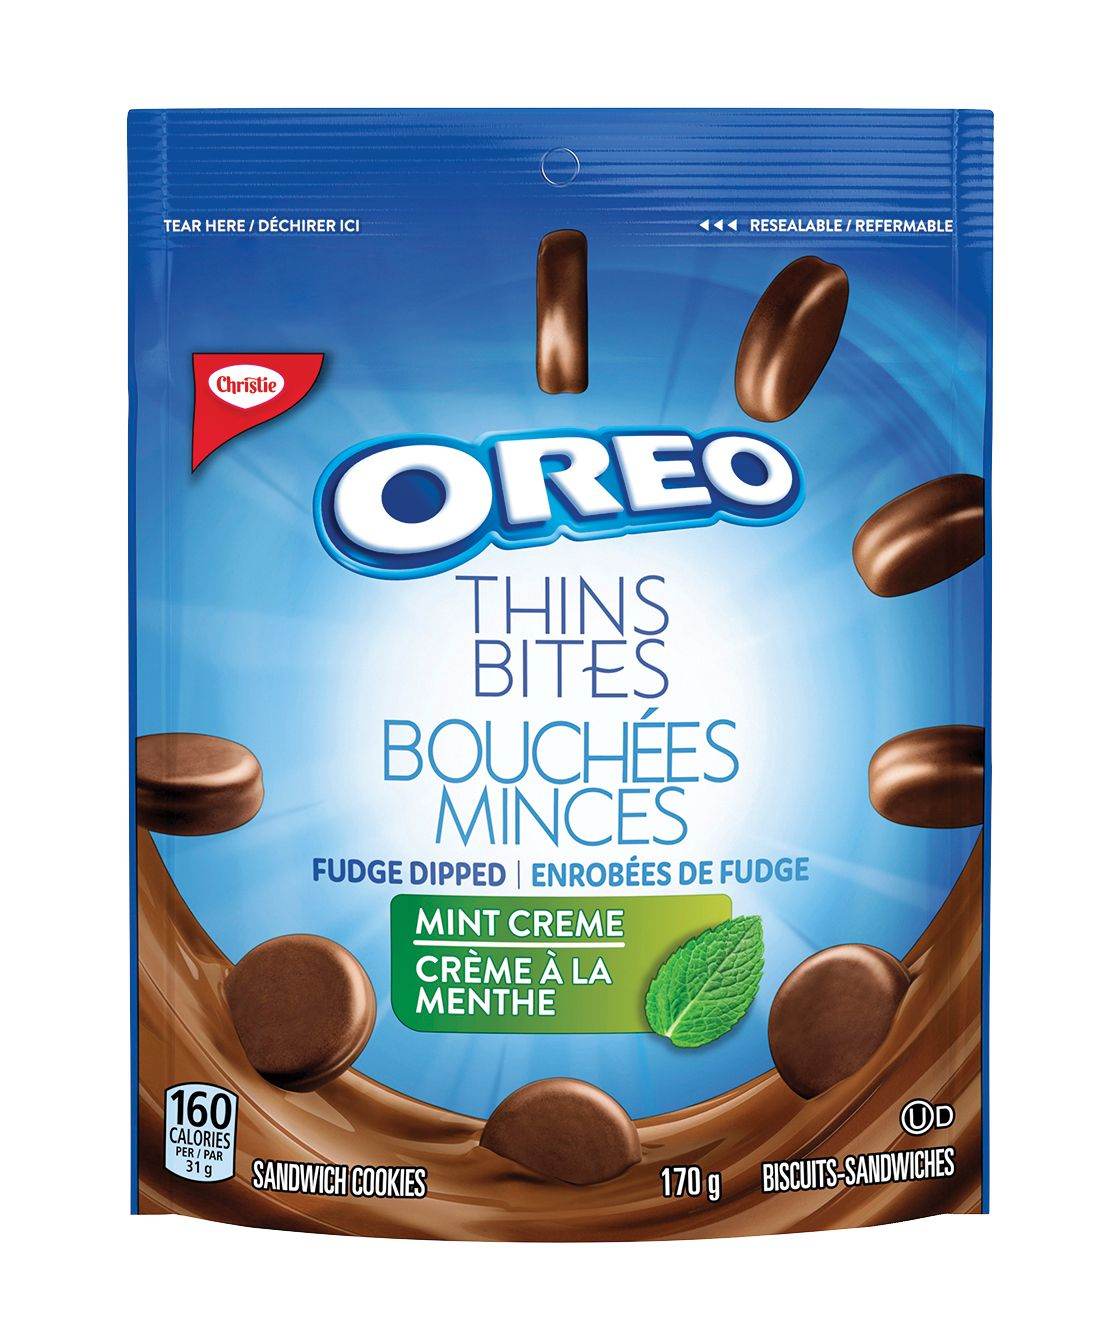 Oreo Thin Bites Dipped Mint Creme Cookies 170 G